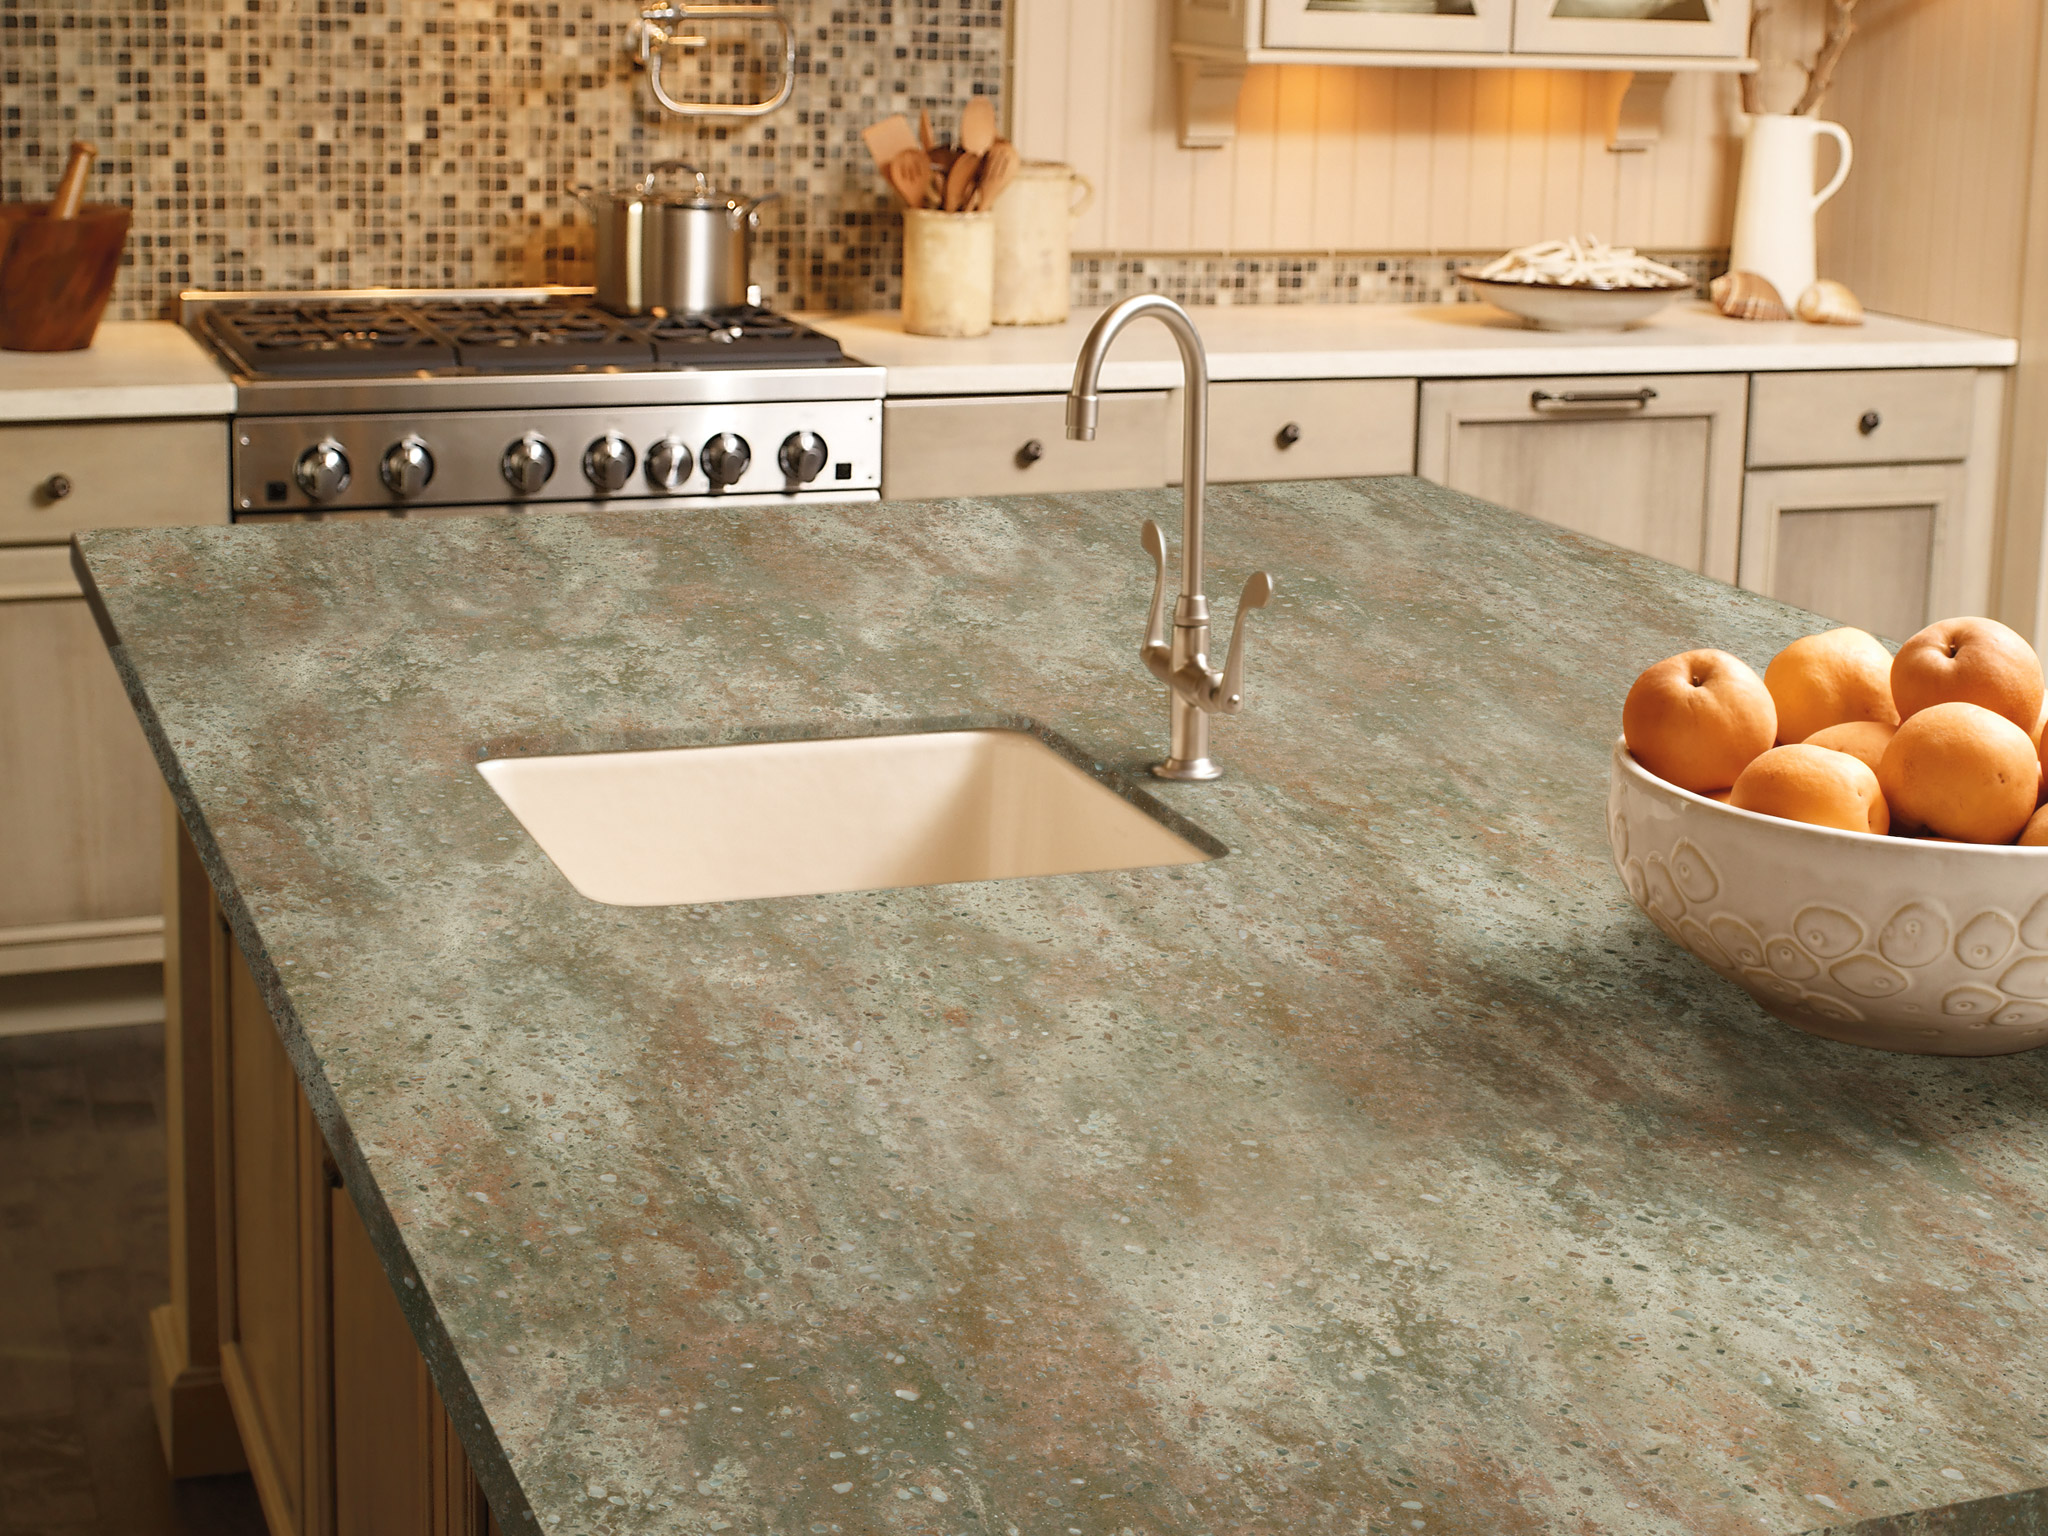 Install Granite counter top